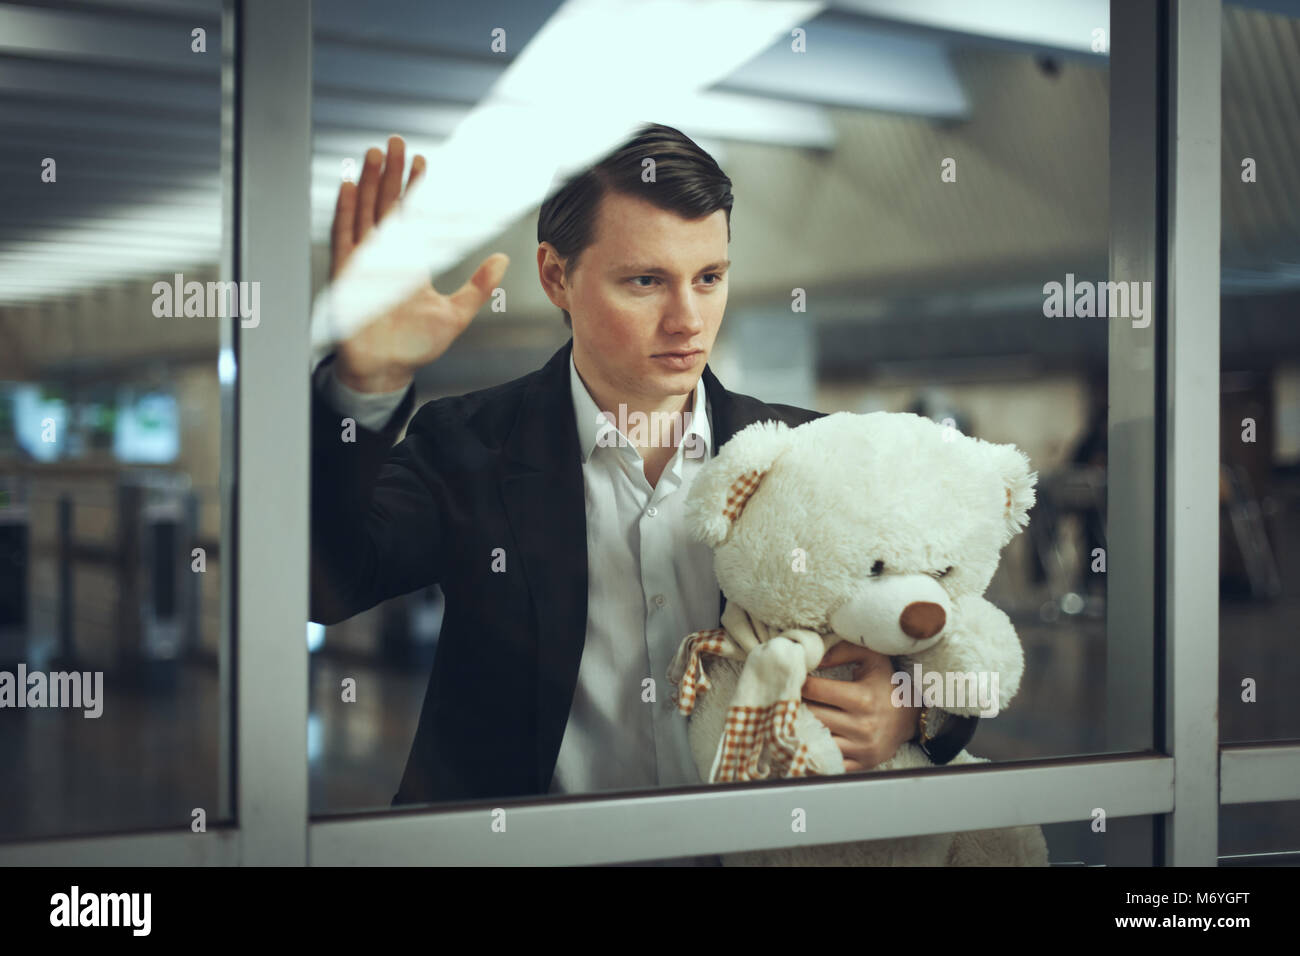 Sad man with a toy bear waiting for a meeting. He looks out the window Stock Photo